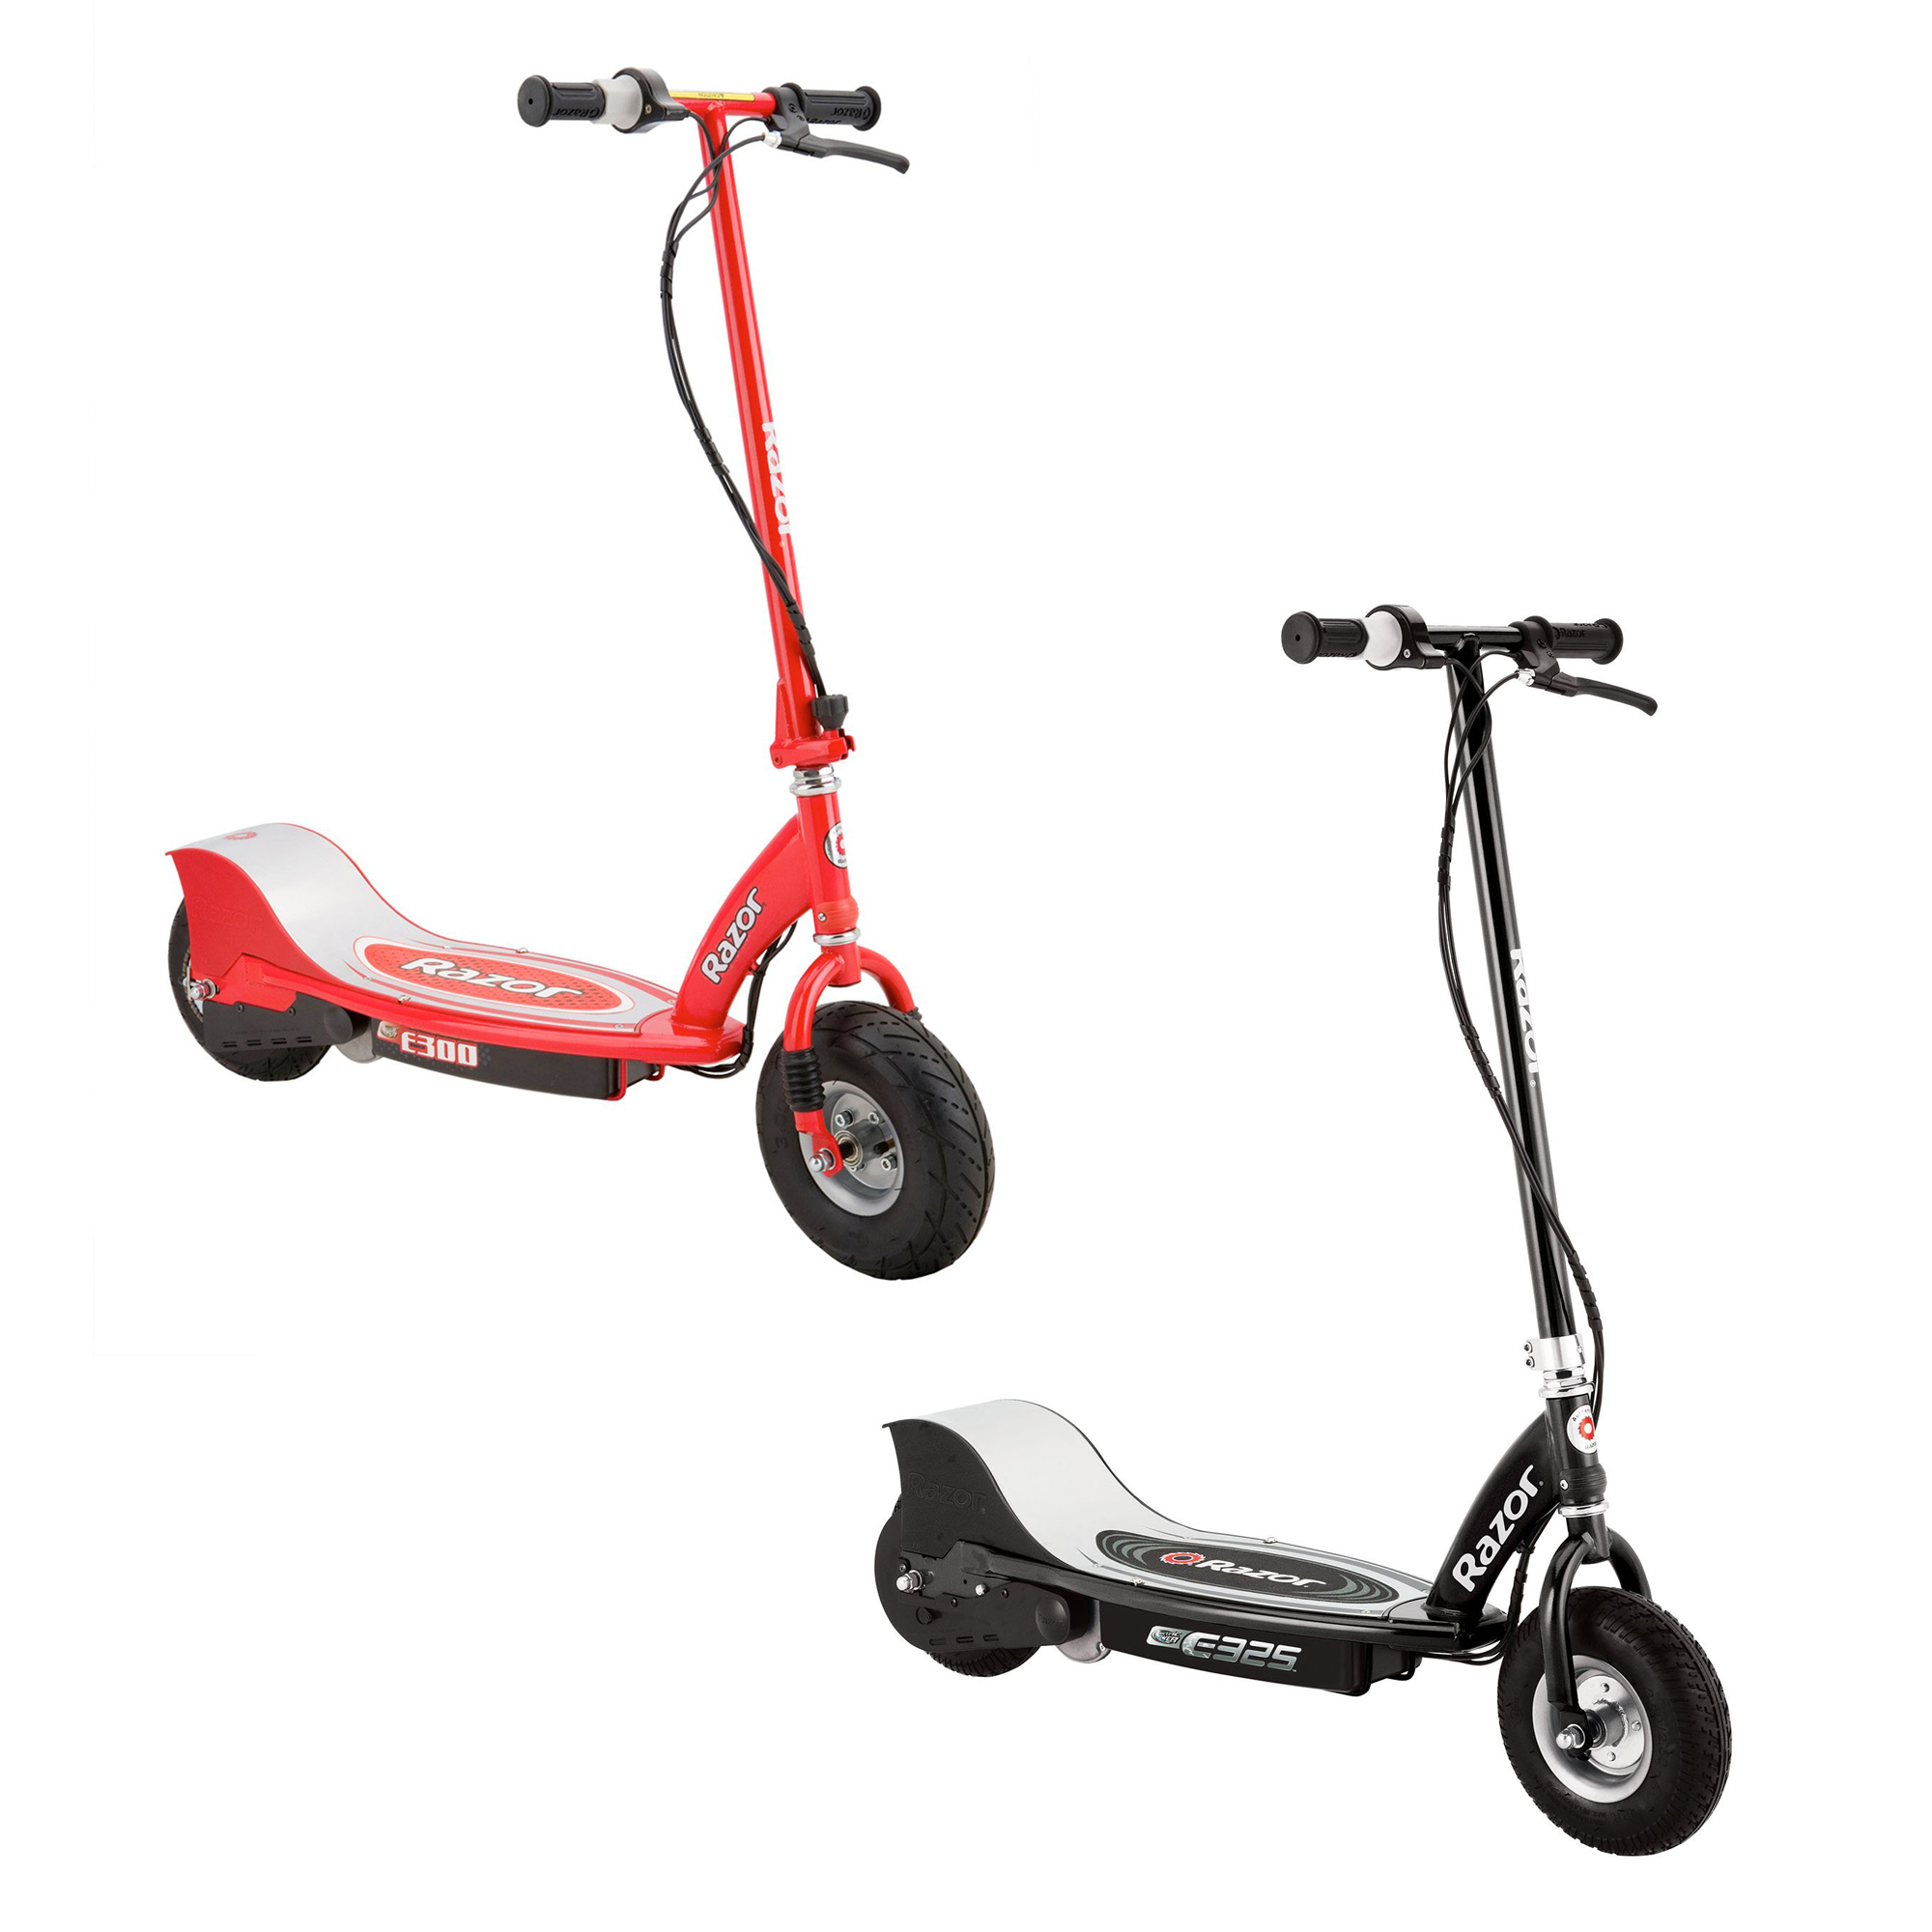 Razor Electric Rechargeable Motorized Ride On Kids Scooters, 1 Black & 1 Red by Razor